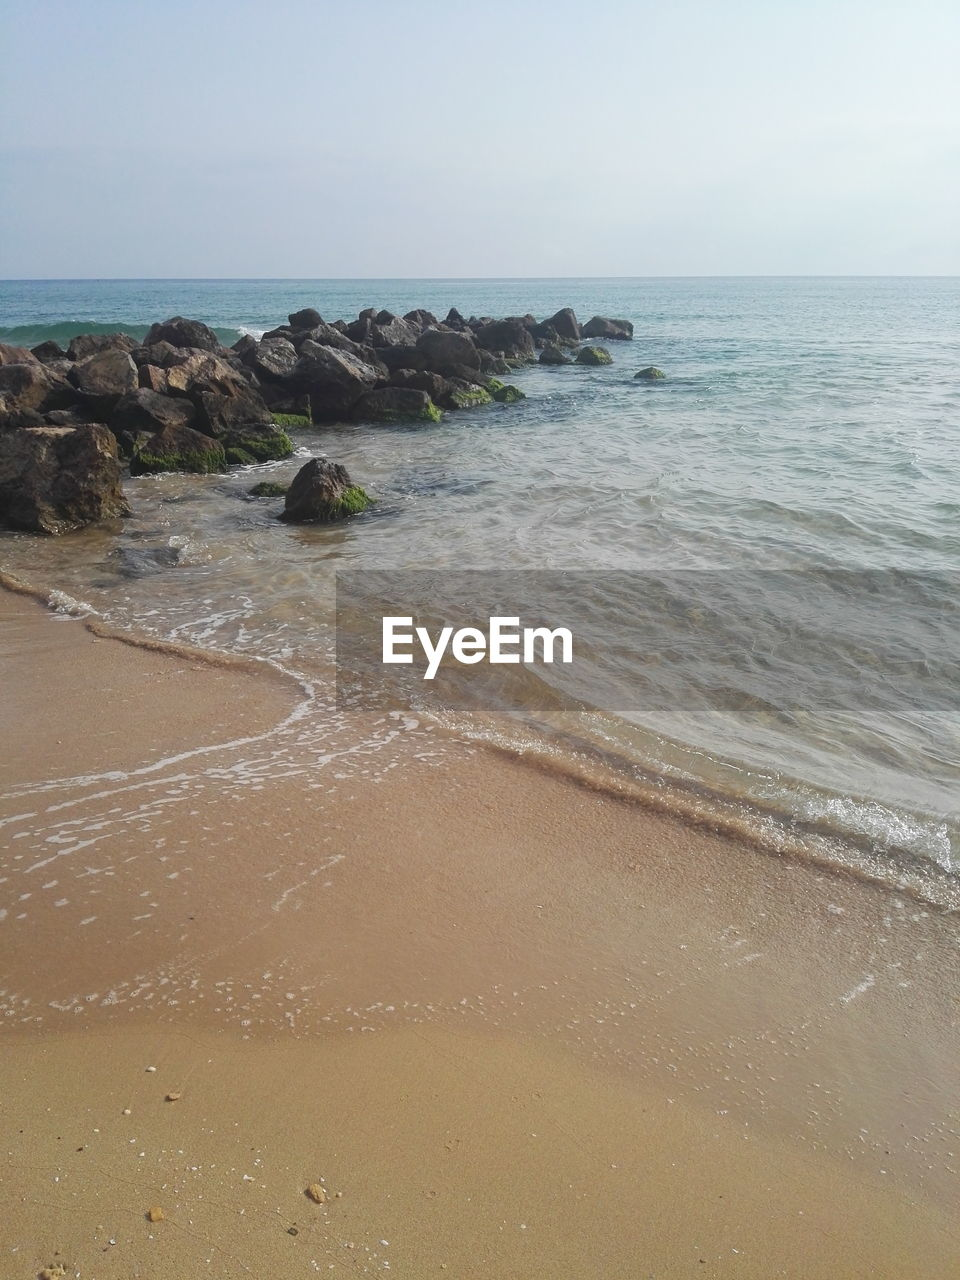 sea, water, beach, land, horizon, sky, horizon over water, beauty in nature, scenics - nature, sand, nature, tranquil scene, tranquility, clear sky, rock, no people, motion, idyllic, non-urban scene, outdoors